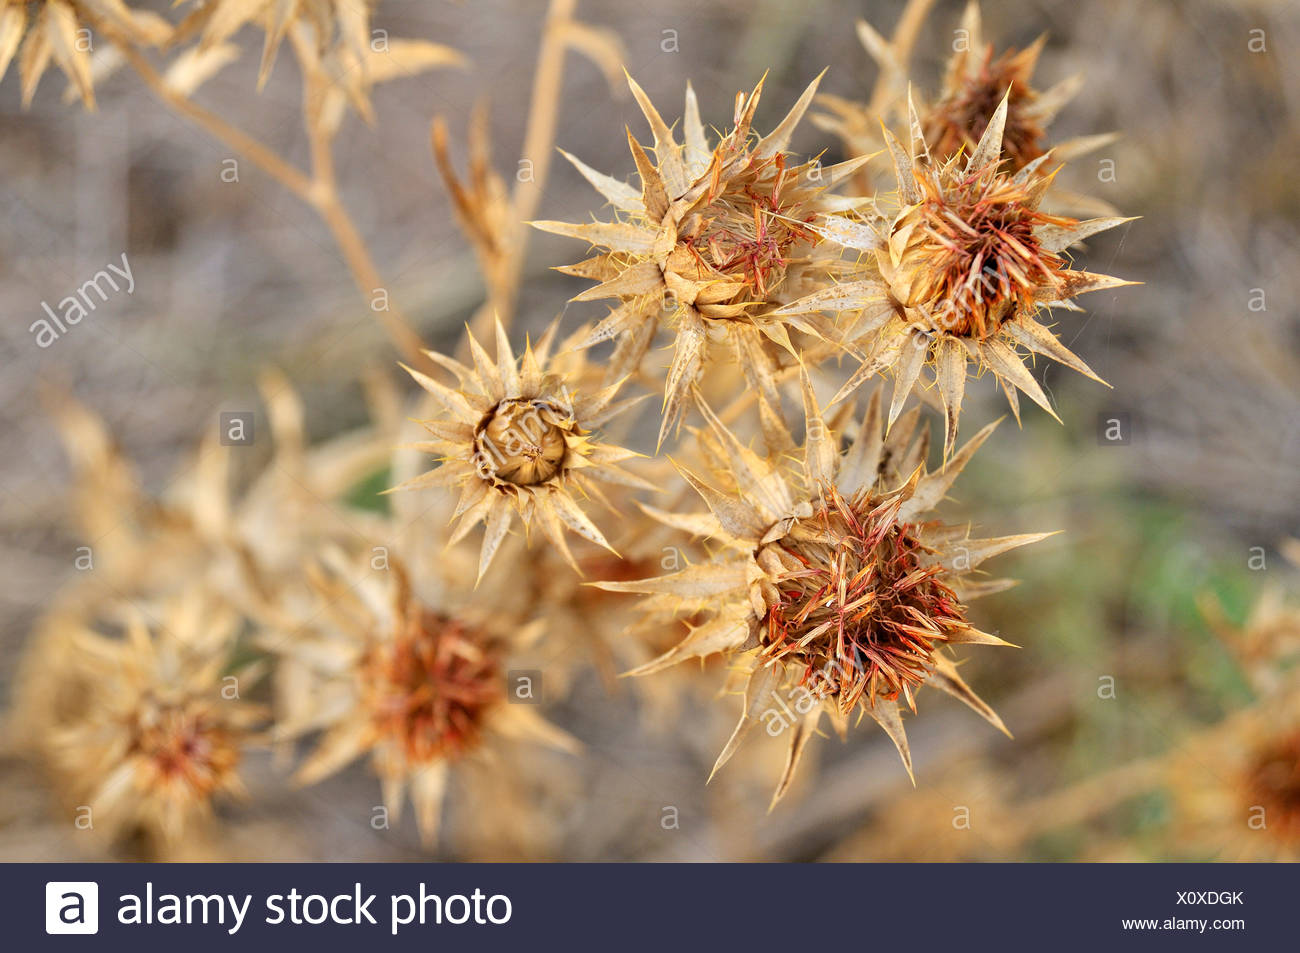 Safflower (Carthamus tinctorius), grown large-scale by the major landowners at the expense of the Chaco vegetation to extract - Stock Image